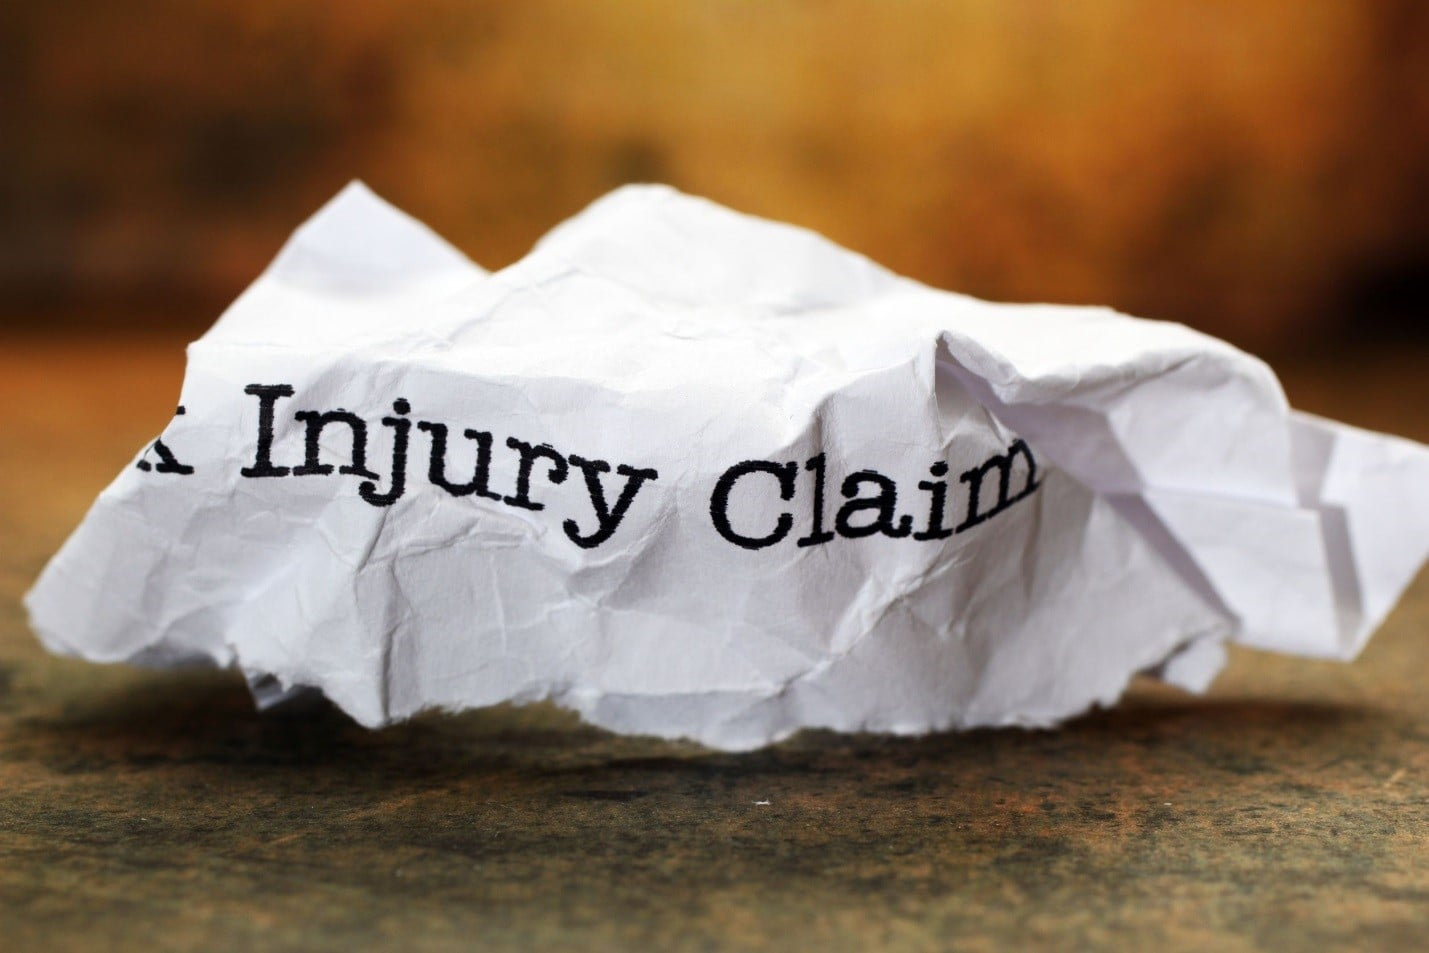 Fort Lauderdale Personal Injury Claims